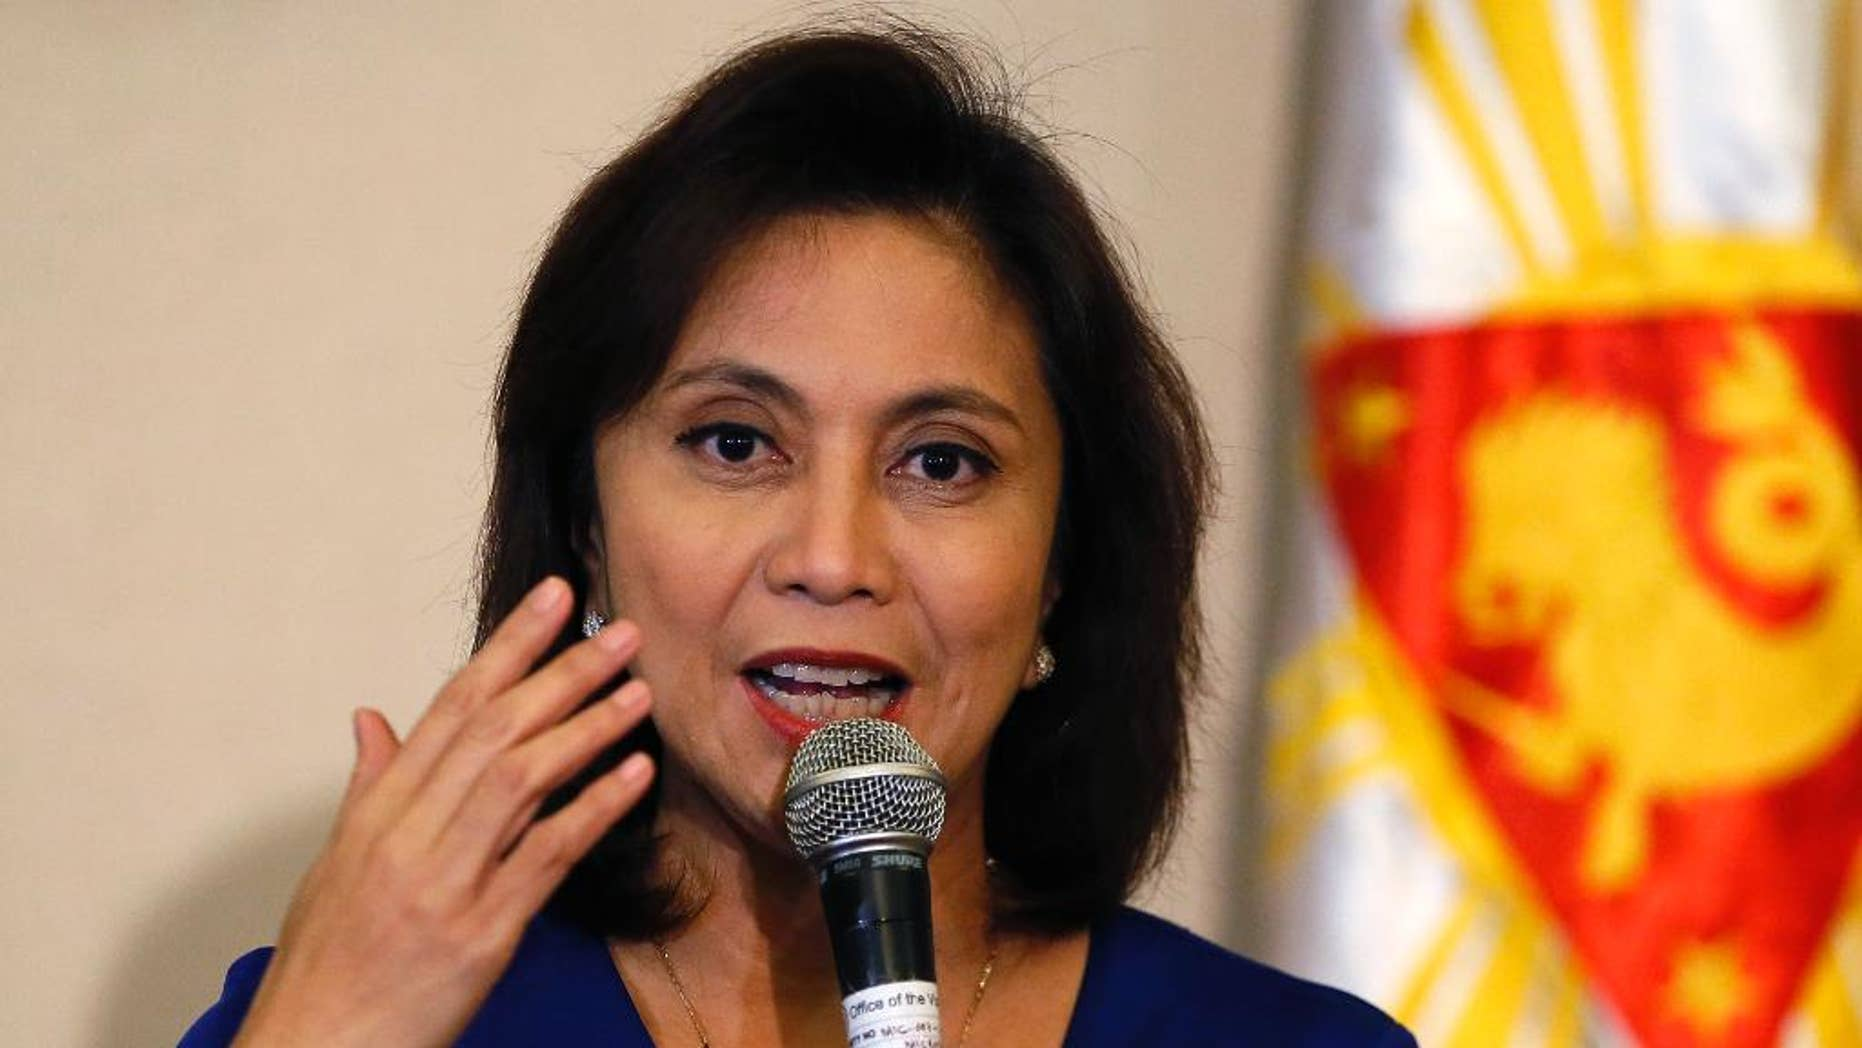 "FILE - In this Dec. 5, 2016 file photo, Philippine Vice President Leni Robredo answers questions from the media during a news conference following her resignation from her cabinet post under President Rodrigo Duterte in suburban Quezon city, south of Manila, Philippines. The Philippine vice president has raised alarms over the president's bloody crackdown against illegal drugs, which she says can't be solved ""with bullets alone,"" and she also asked Filipinos to ""defy brazen incursions on their rights.""  The comments are one of Robredo's sharpest critiques so far of President Rodrigo Duterte's campaign and are likely to antagonize him because they are intended for an international forum of human rights advocates, whom he has often lambasted.  (AP Photo/Bullit Marquez, File)"